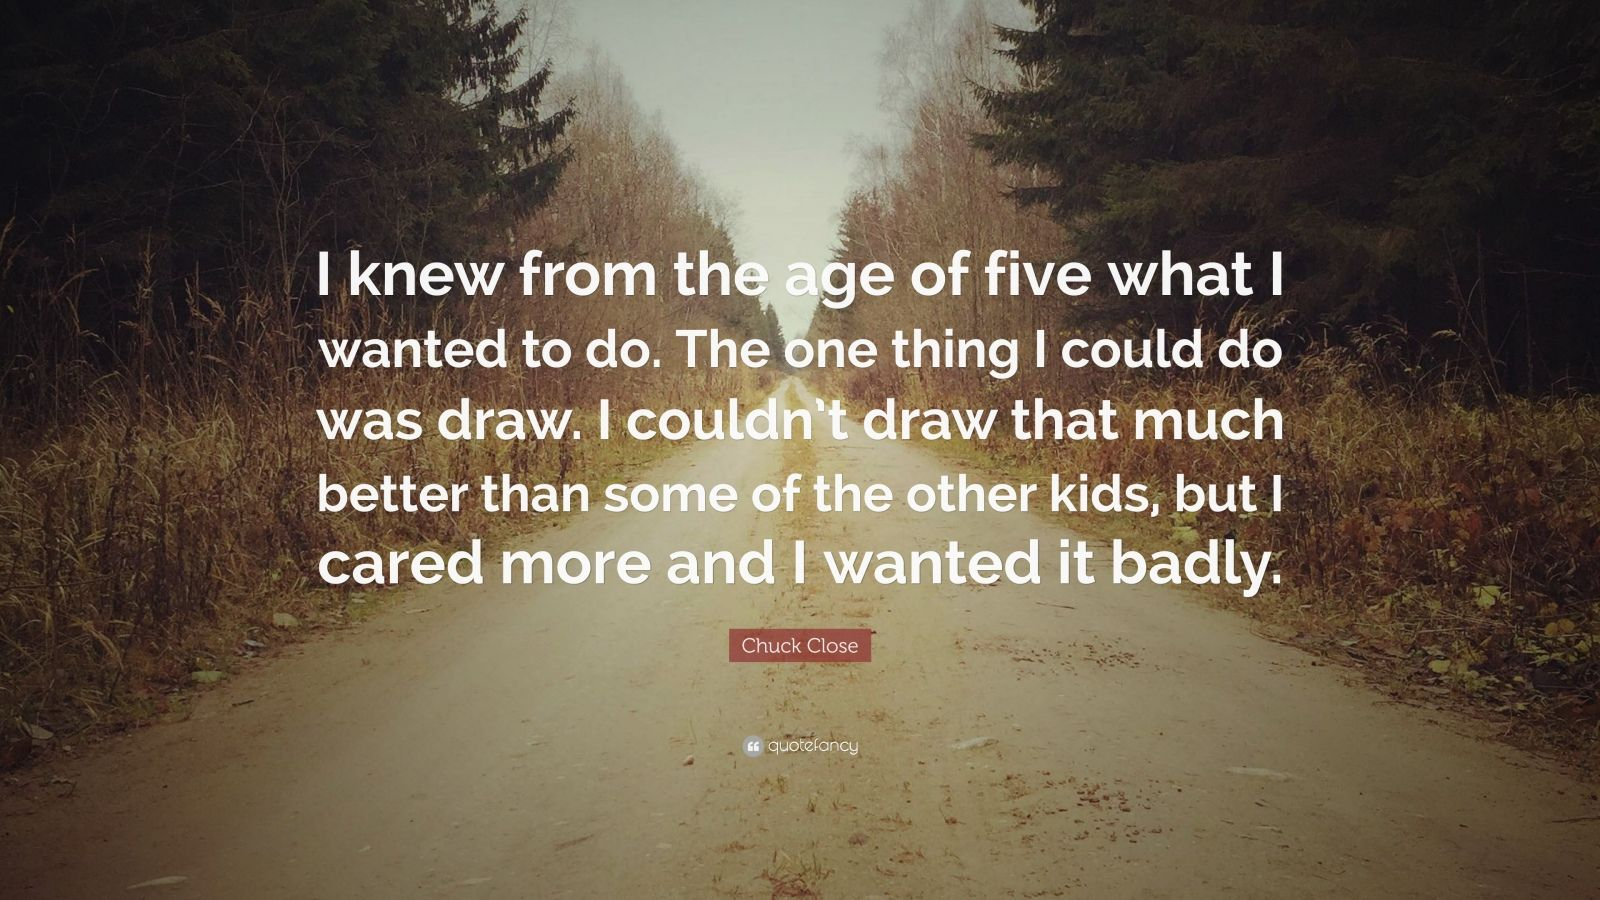 """Chuck Close Quote: """"I knew from the age of five what I wanted to do. The one thing I could do was draw. I couldn't draw that much better than some of the other kids, but I cared more and I wanted it badly."""""""